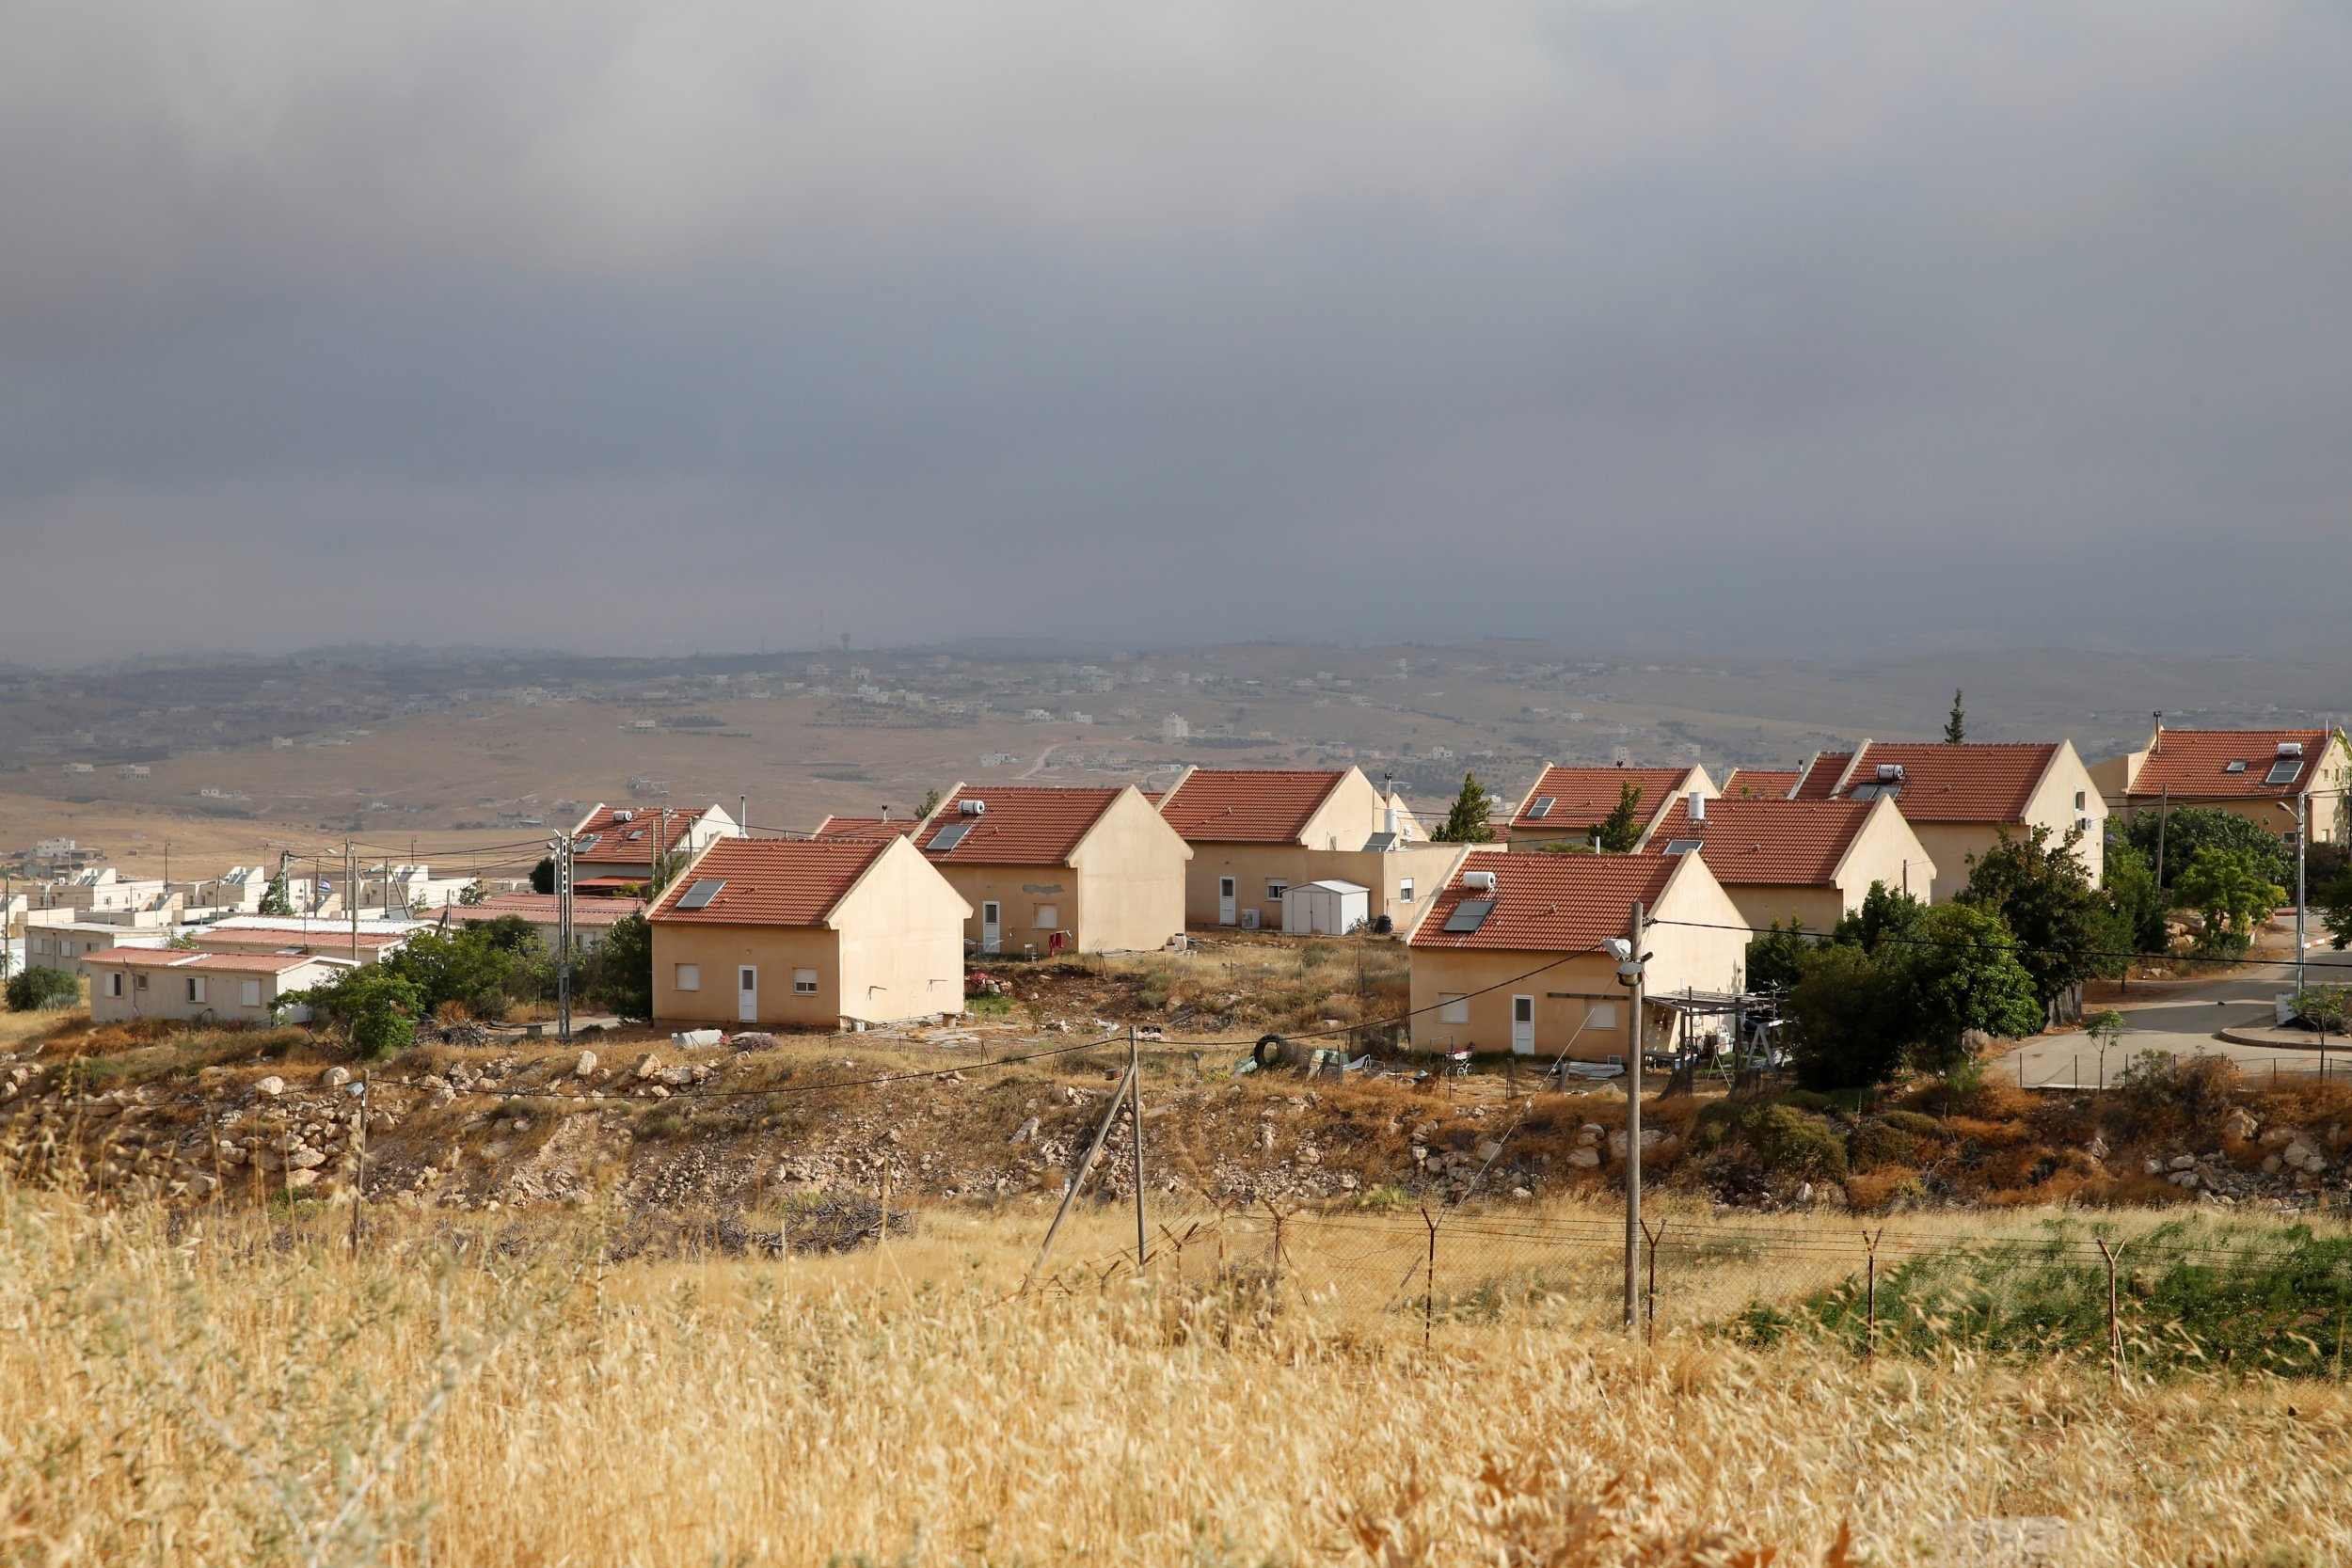 Israel Settlement in the West Bank